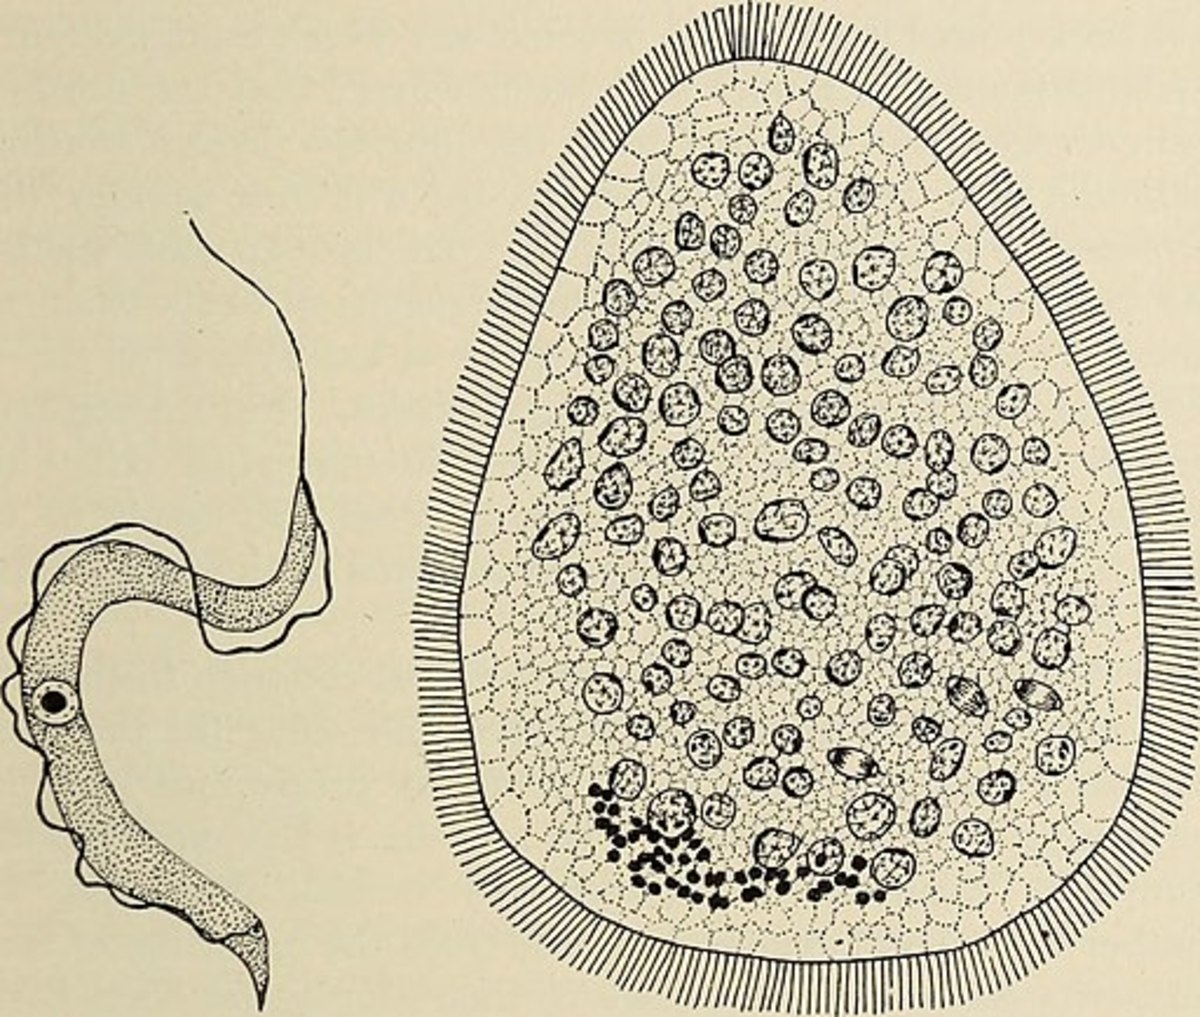 A flagellate is a type of protozoa. Wenrich (1924) reports one flagellate and seven ciliates from the skin of tadpoles, and Sassuchin (1928) has added a list of species which he has found in the slime of the tadpole skin.